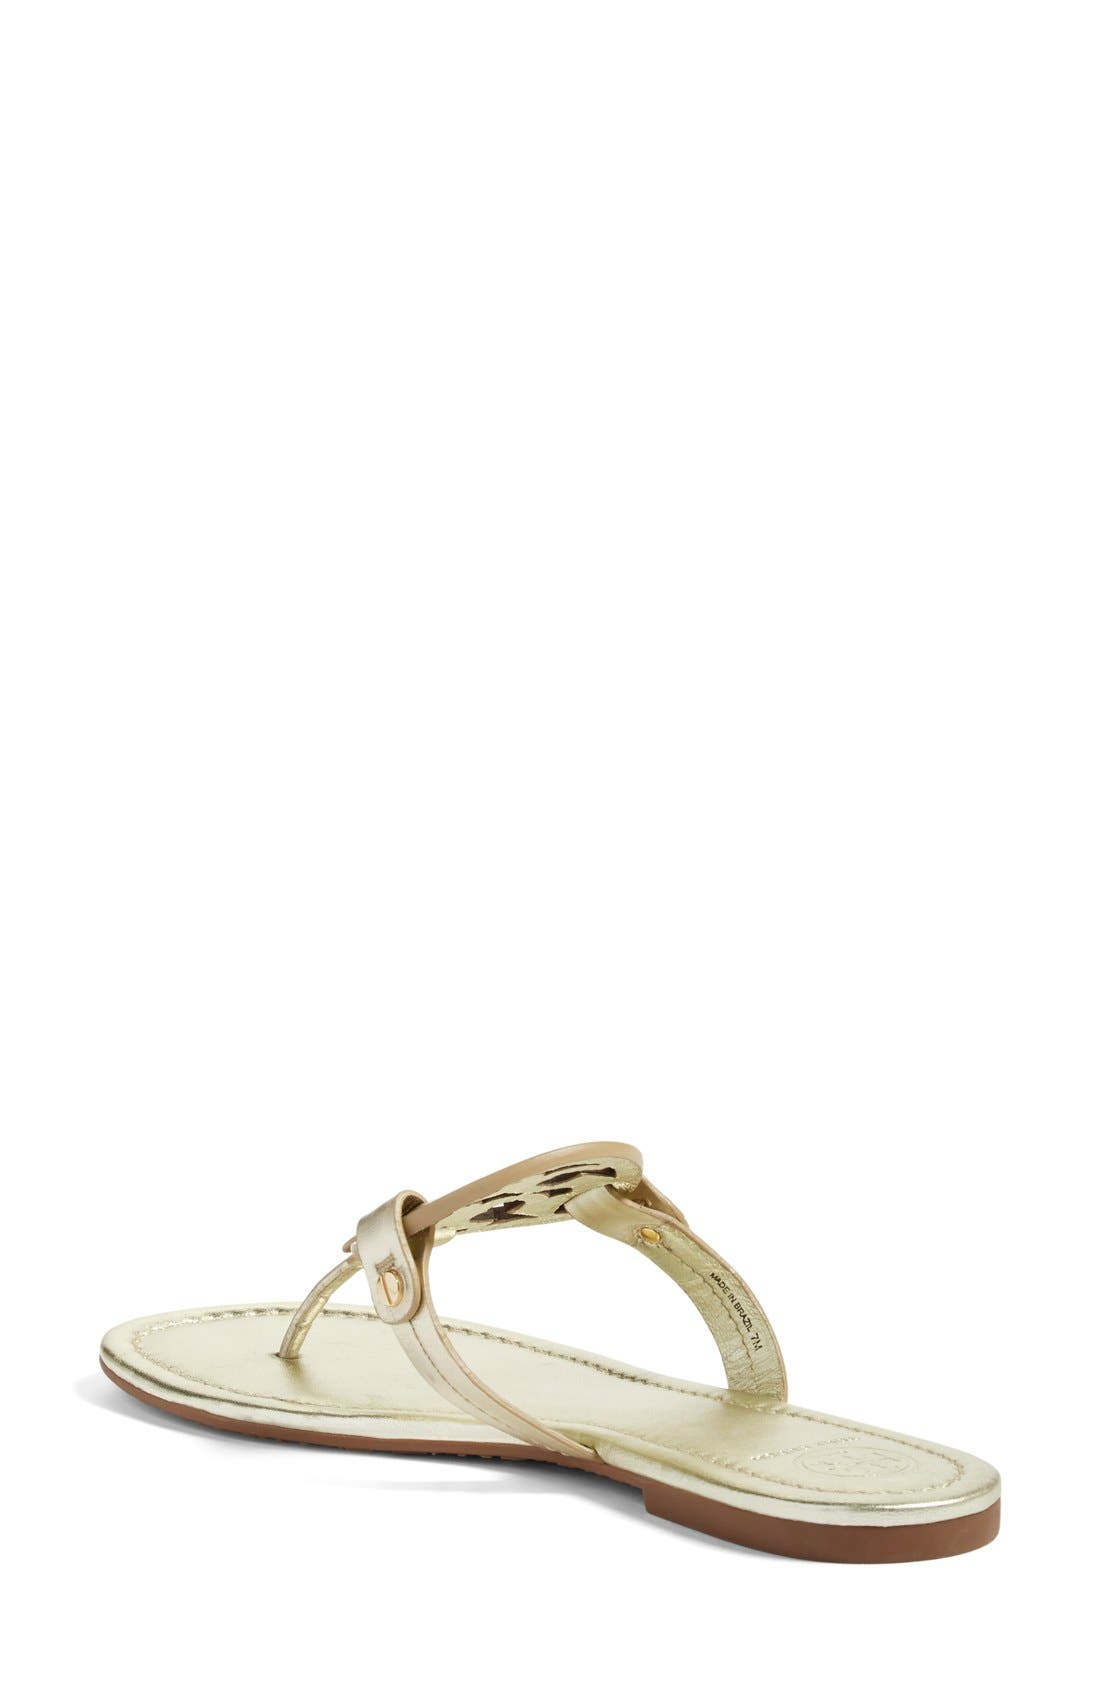 Miller Flip Flop,                             Alternate thumbnail 5, color,                             SPARK GOLD